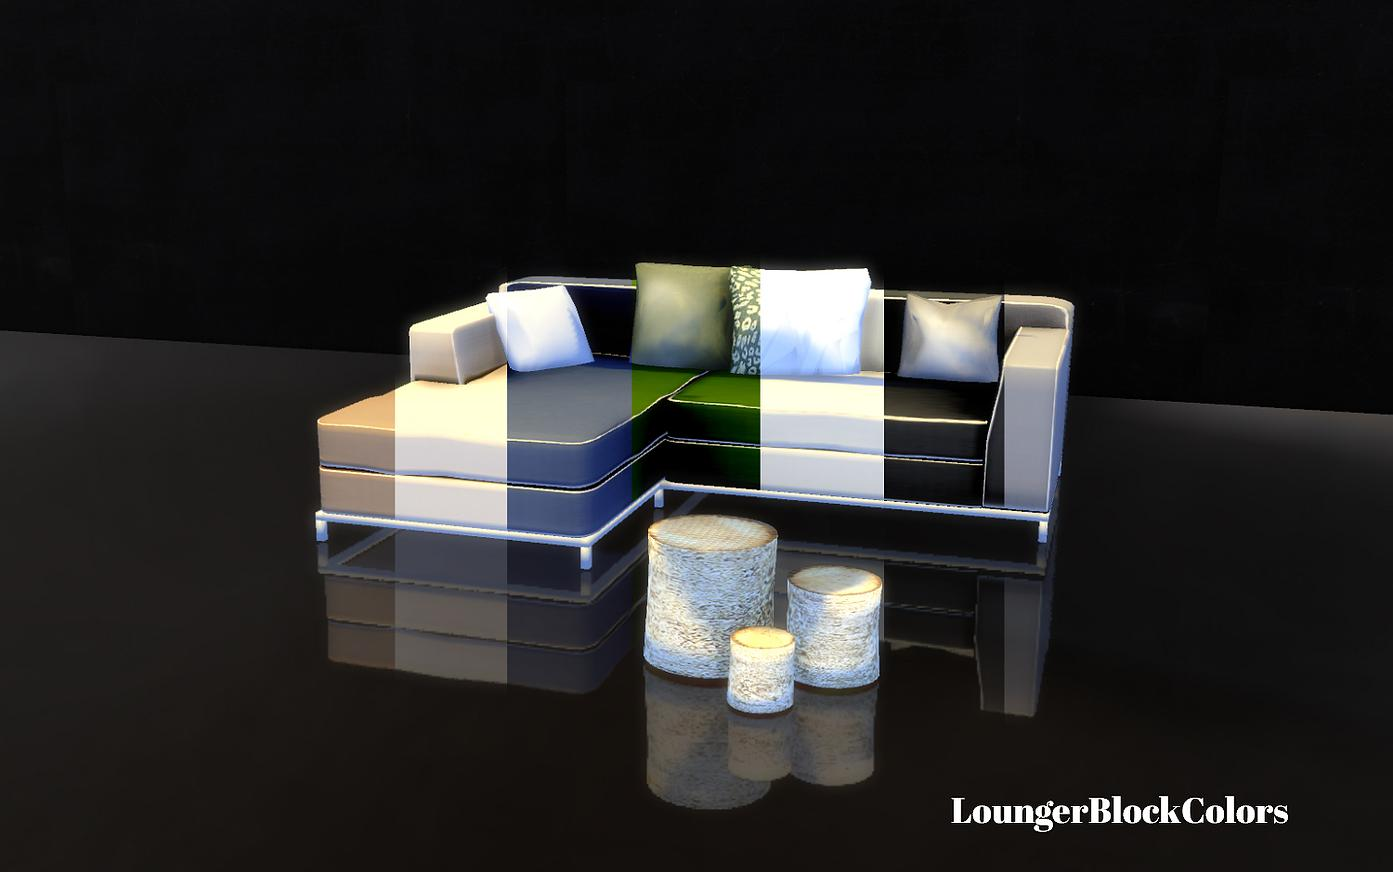 Lounger, Pillows and Stump Tables by Sim-o-matic